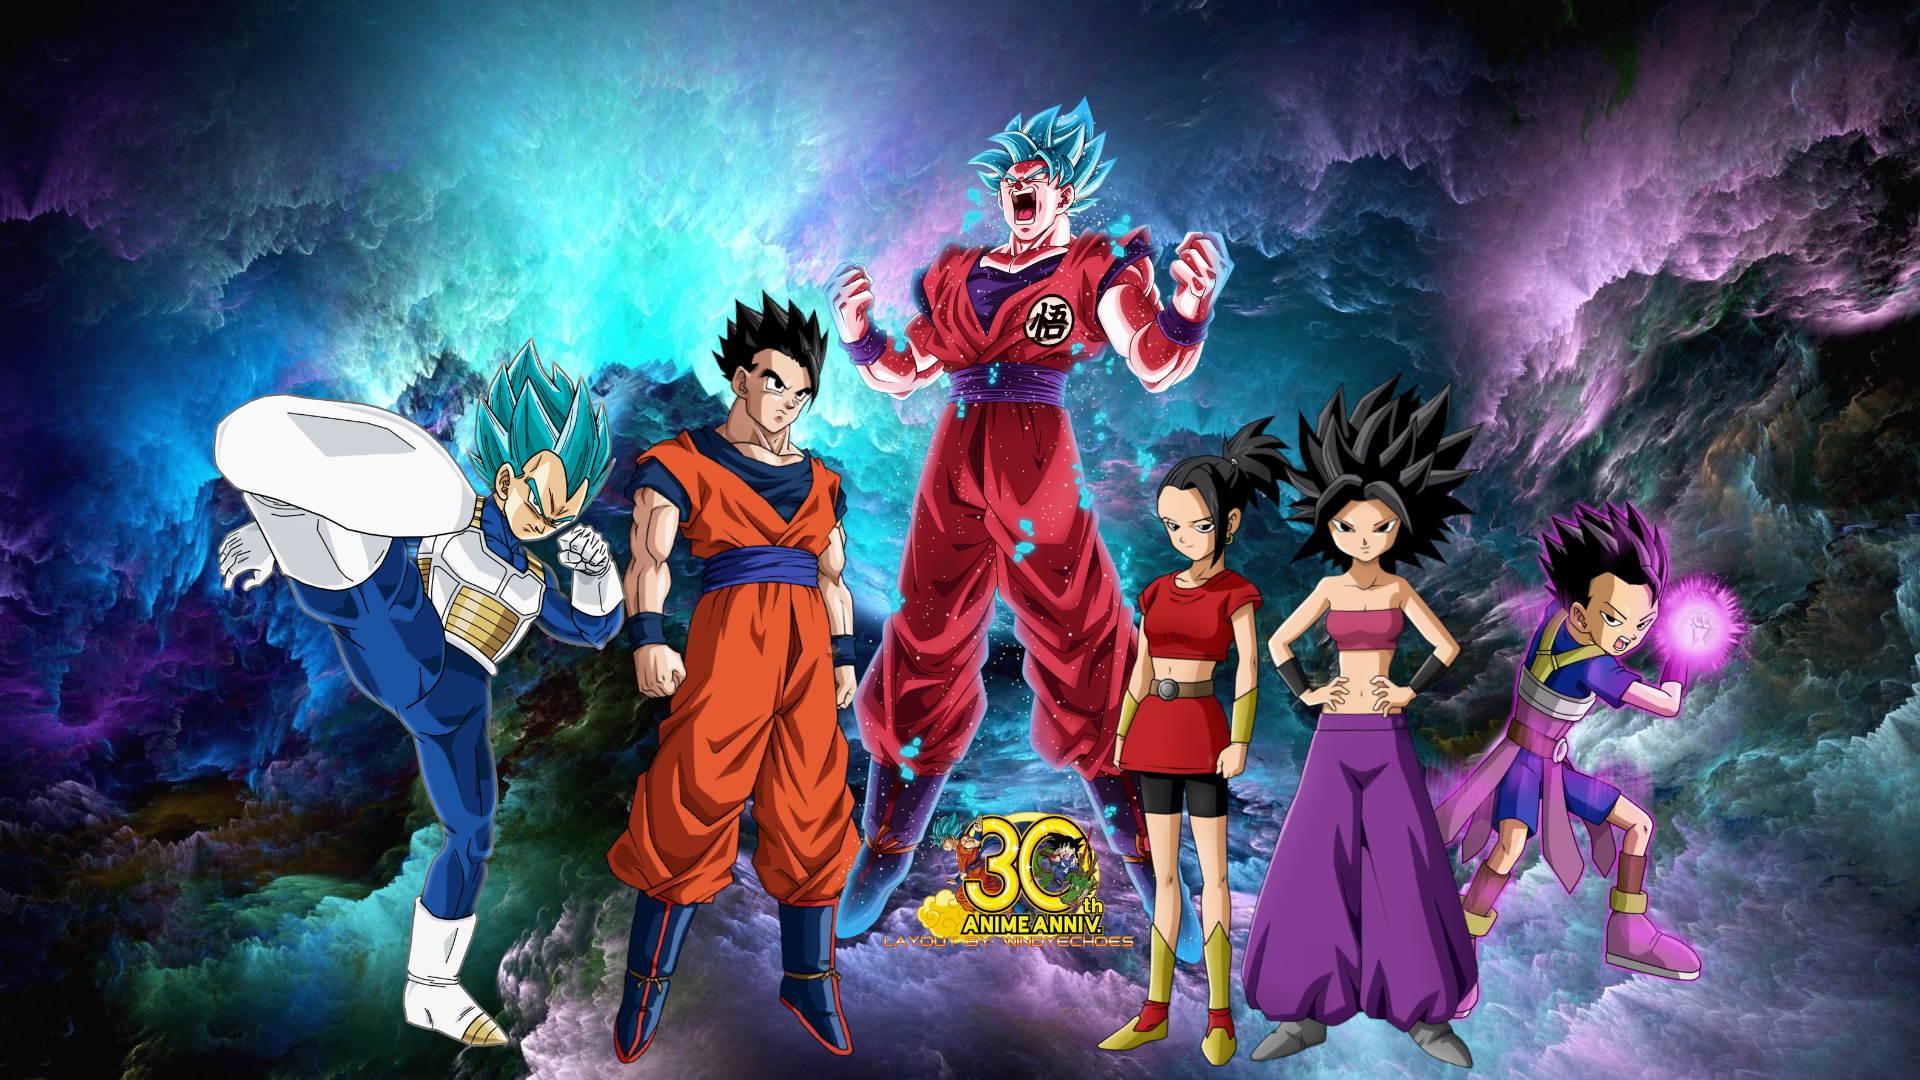 All Saiyans Tournament Of Power Wallpaper 2 By Windyechoes On